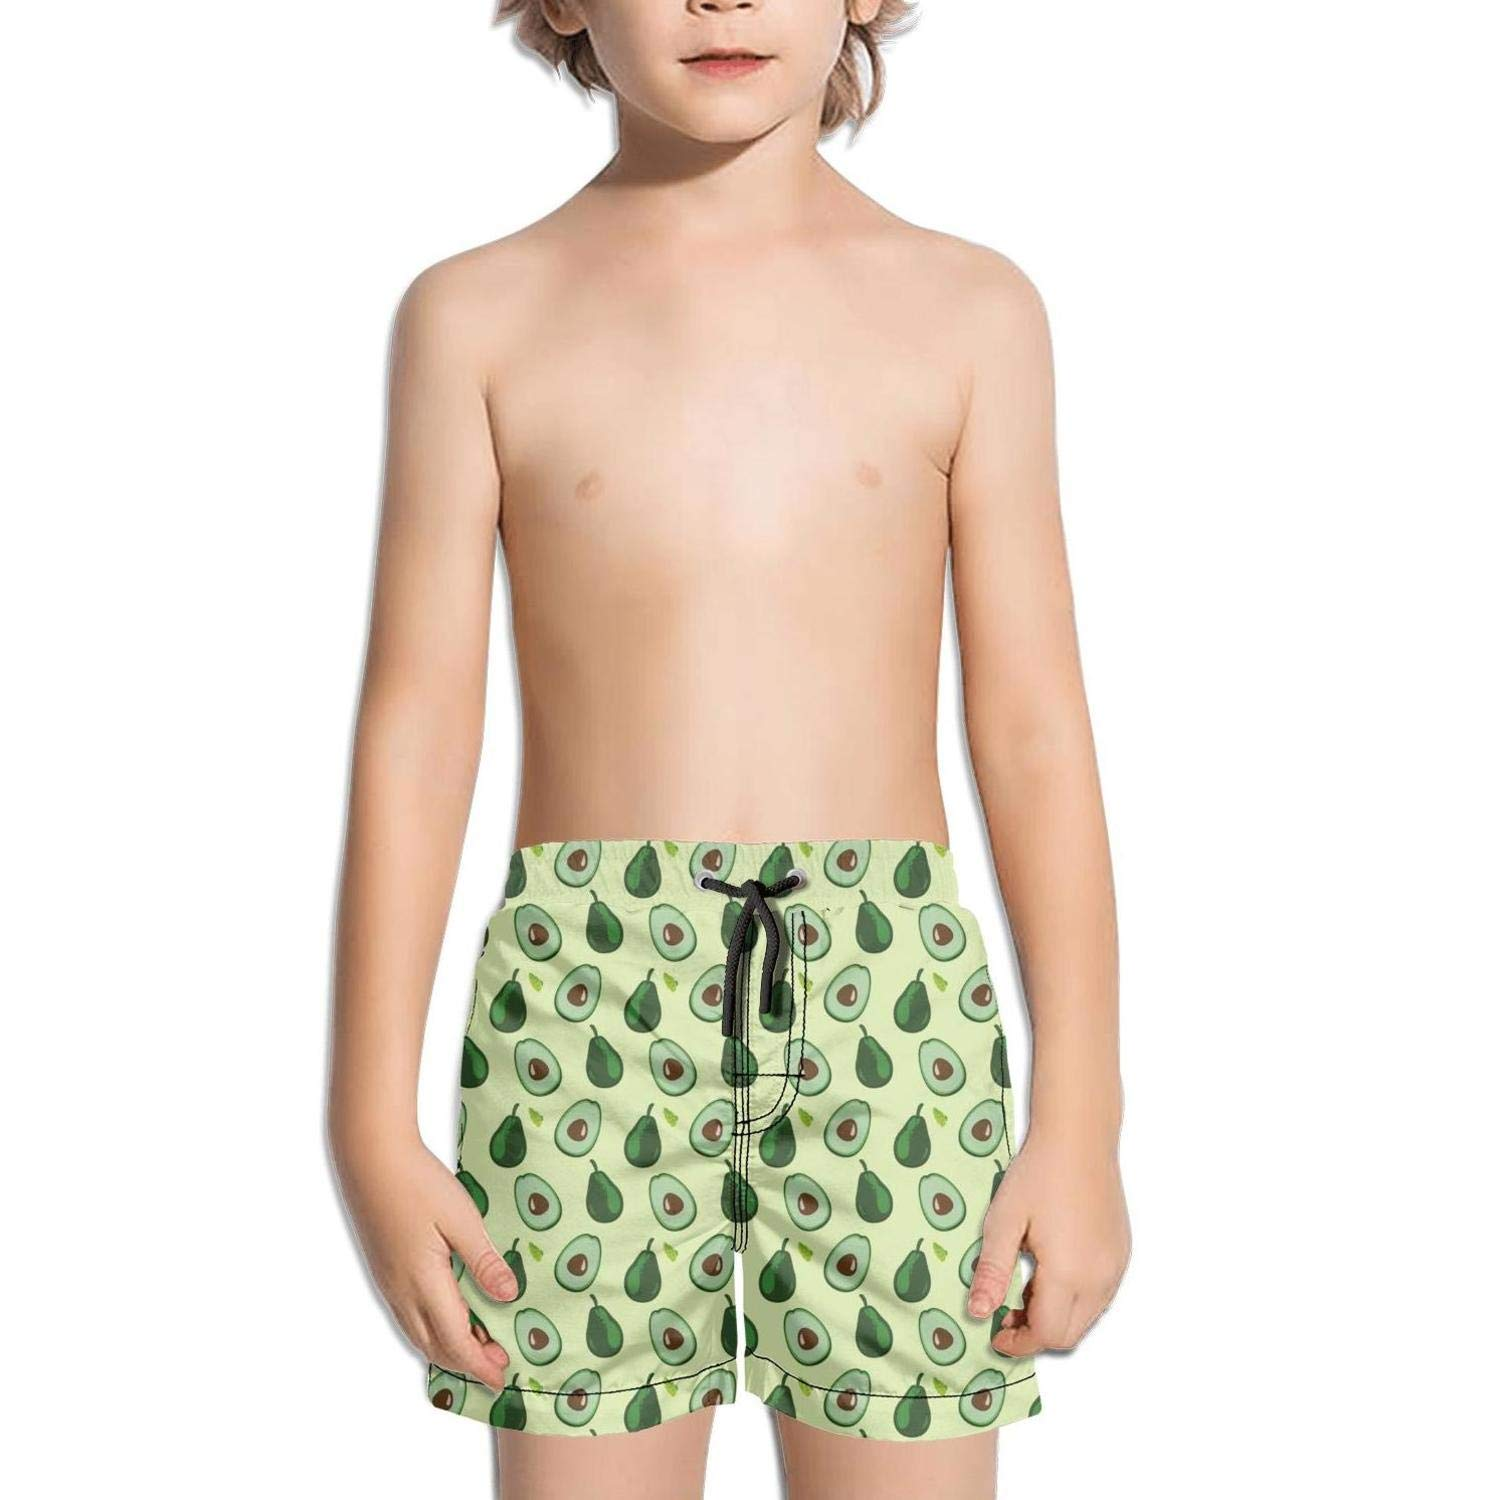 Ouxioaz Boys Swim Trunk Pineapple Cat Avocado Watermelon Beach Board Shorts